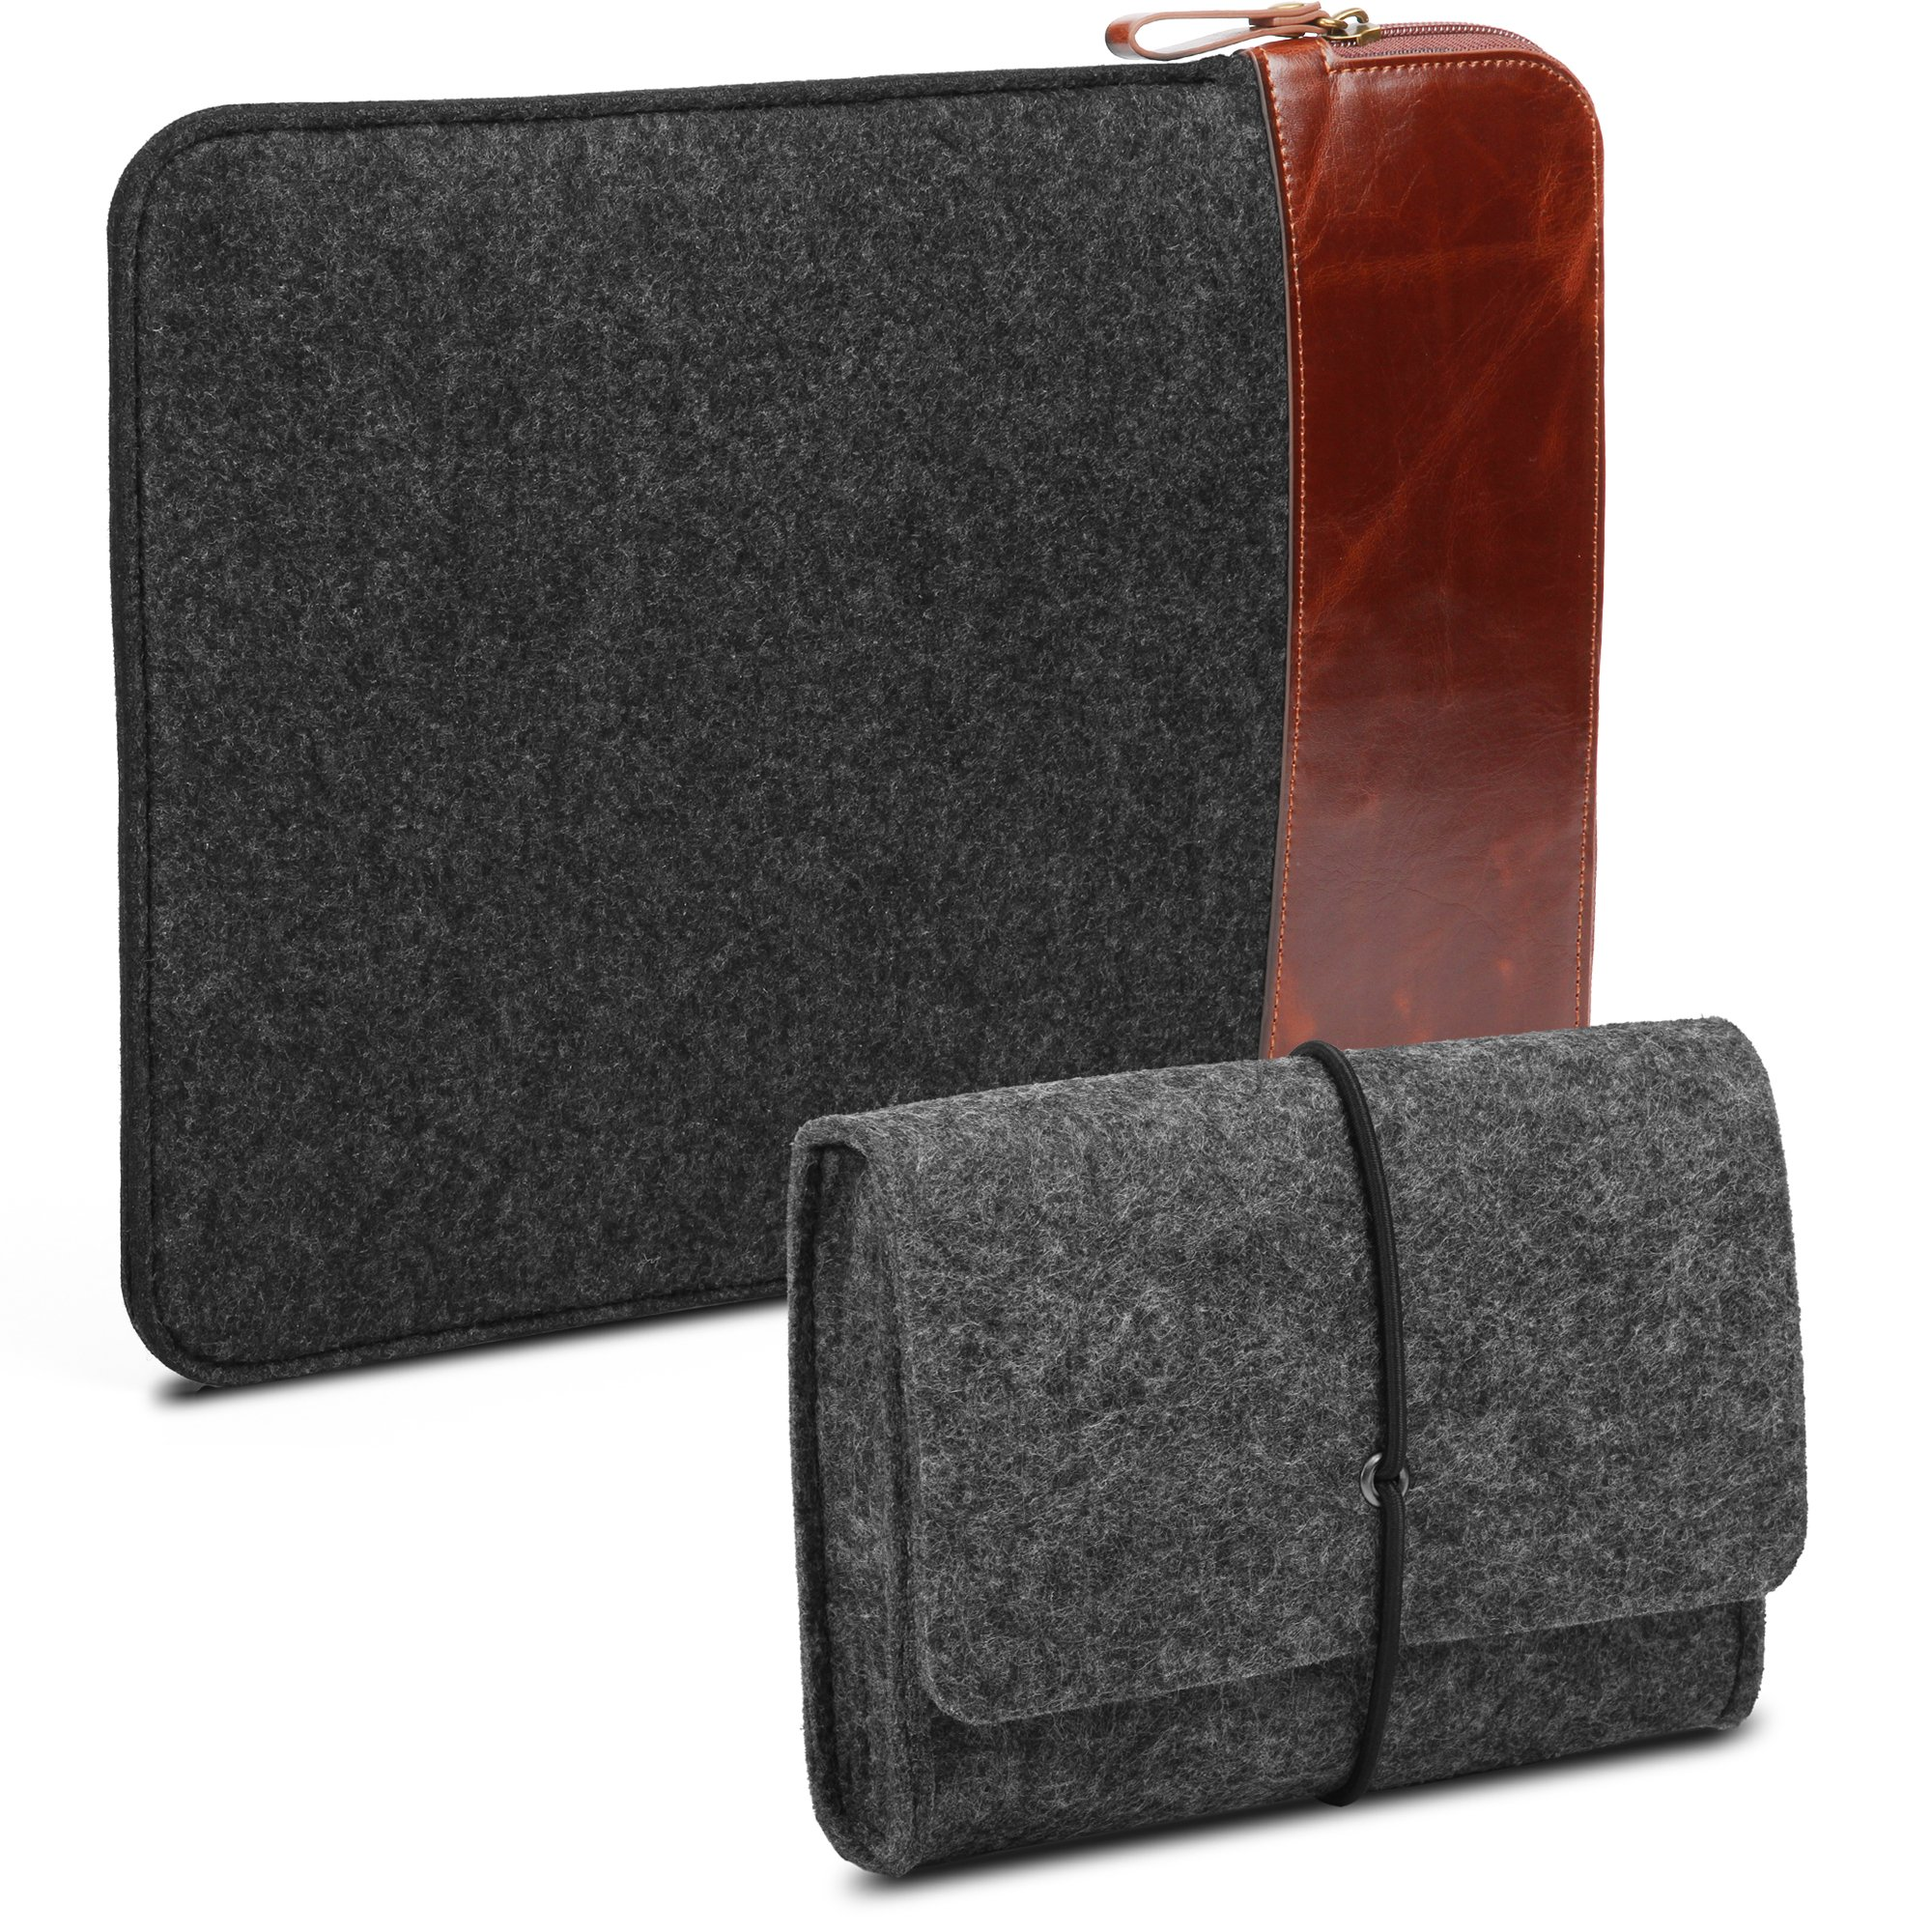 GMYLE 2 in 1 Bundle Felt Storage Pouch Bag & Soft Felt Fabric/Leather Canvas Protective Laptop Tablet Sleeve Case Cover for MacBook Air,MacBook Retina Pro,Old MacBook Pro 13 inch - Charcoal Gray Set